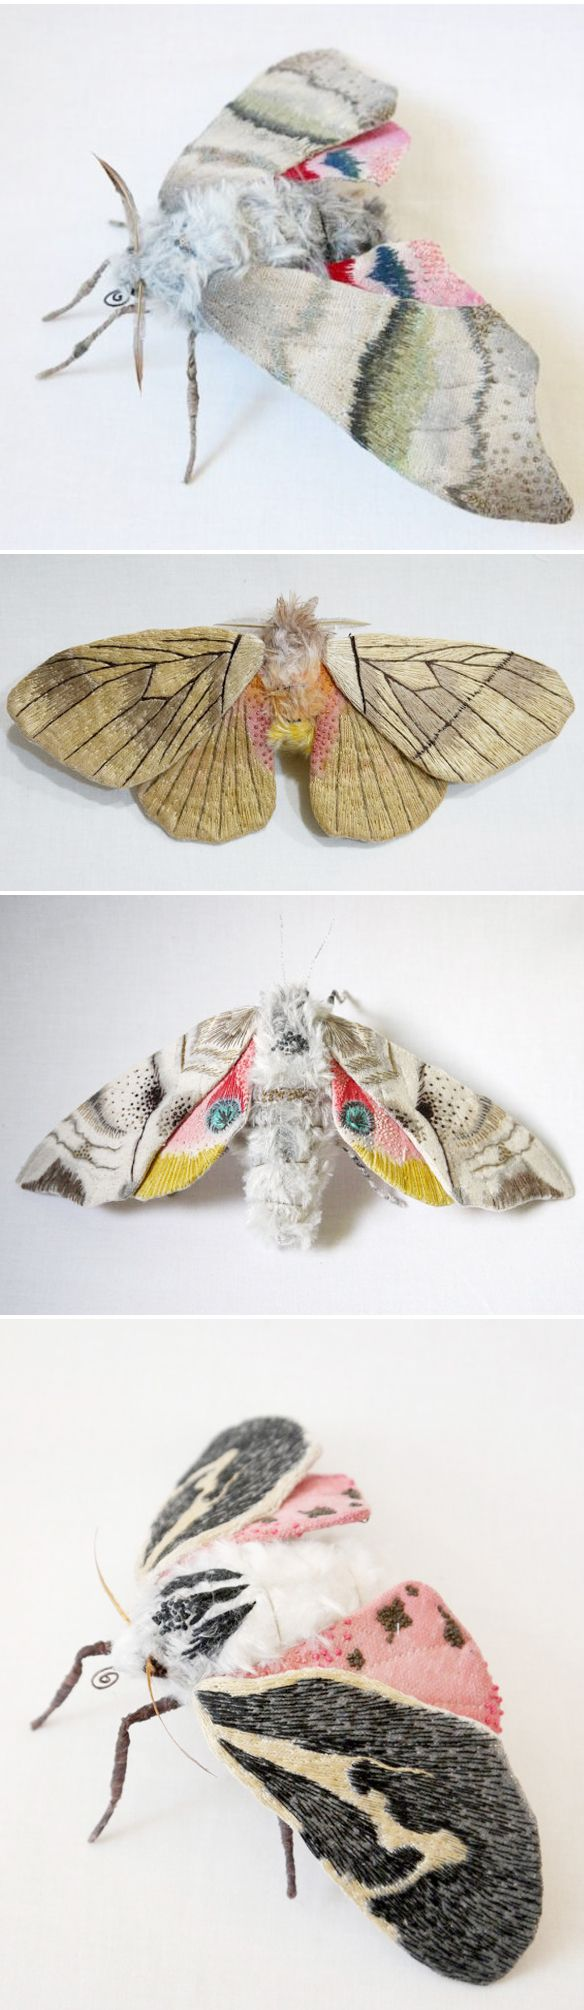 yumi okita - textile moth | my clothes would be so happy with this reversal of fortune - moths made out of fibre!